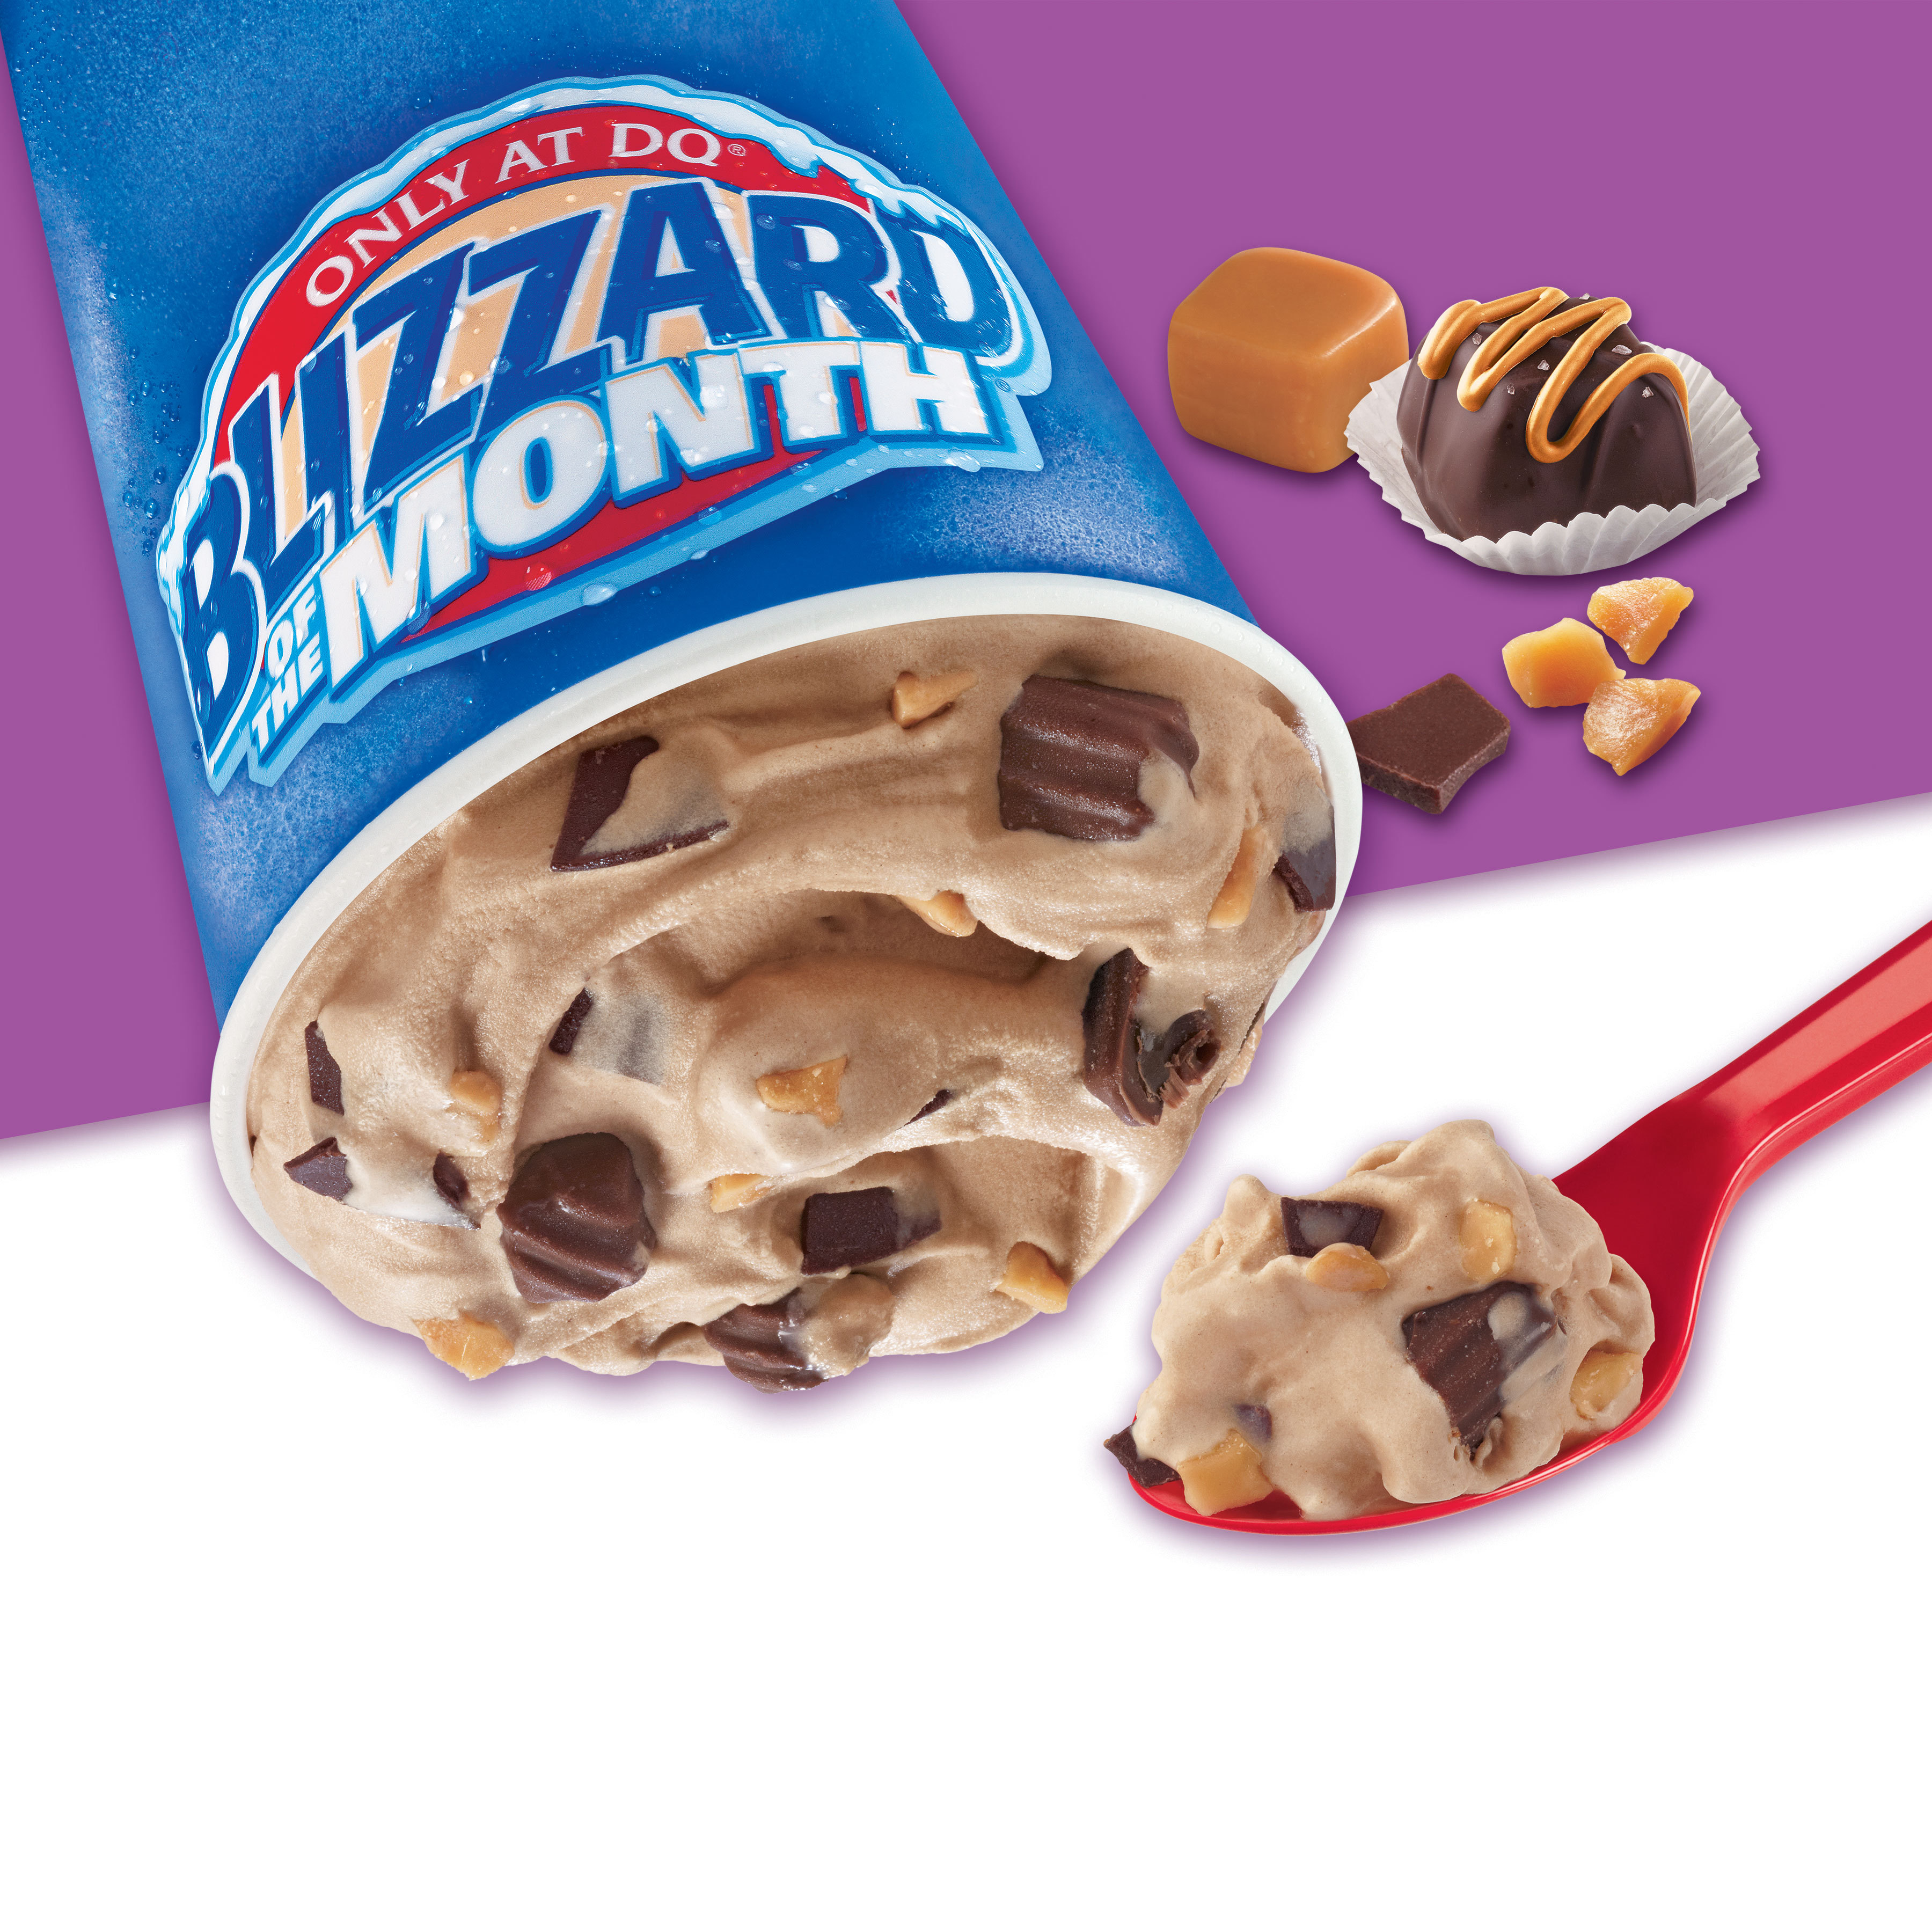 DQ® Brand Invites America to Get Upside Down and Reach 20 ...